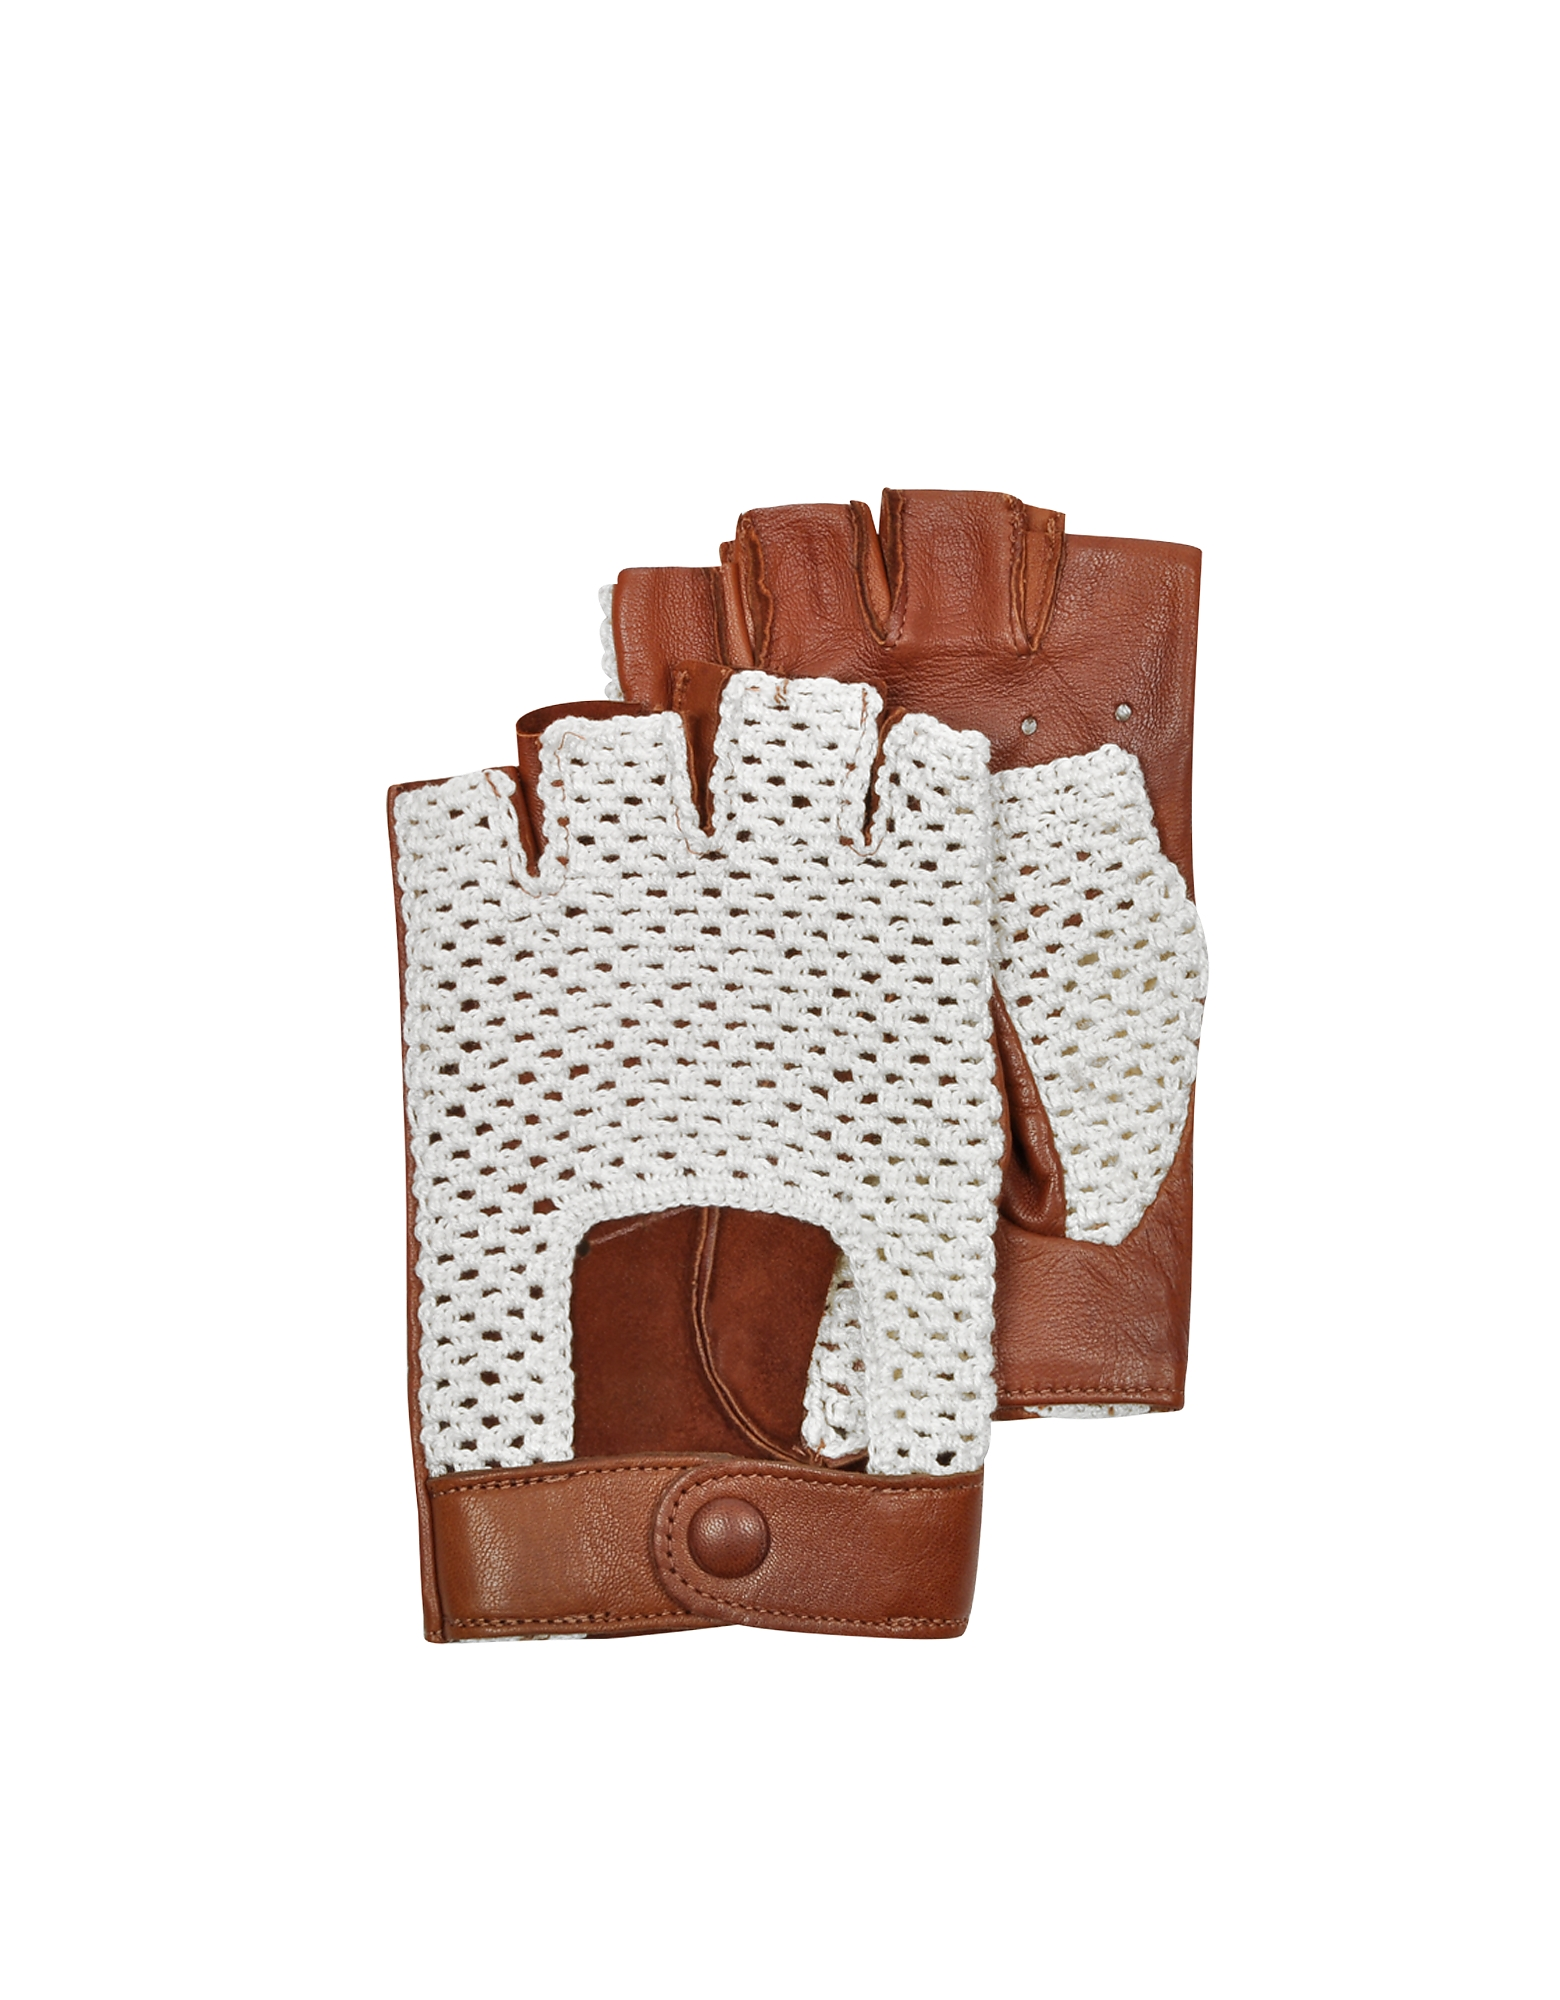 Forzieri Men's Gloves, Brown Leather and Cotton Men's Driving Gloves